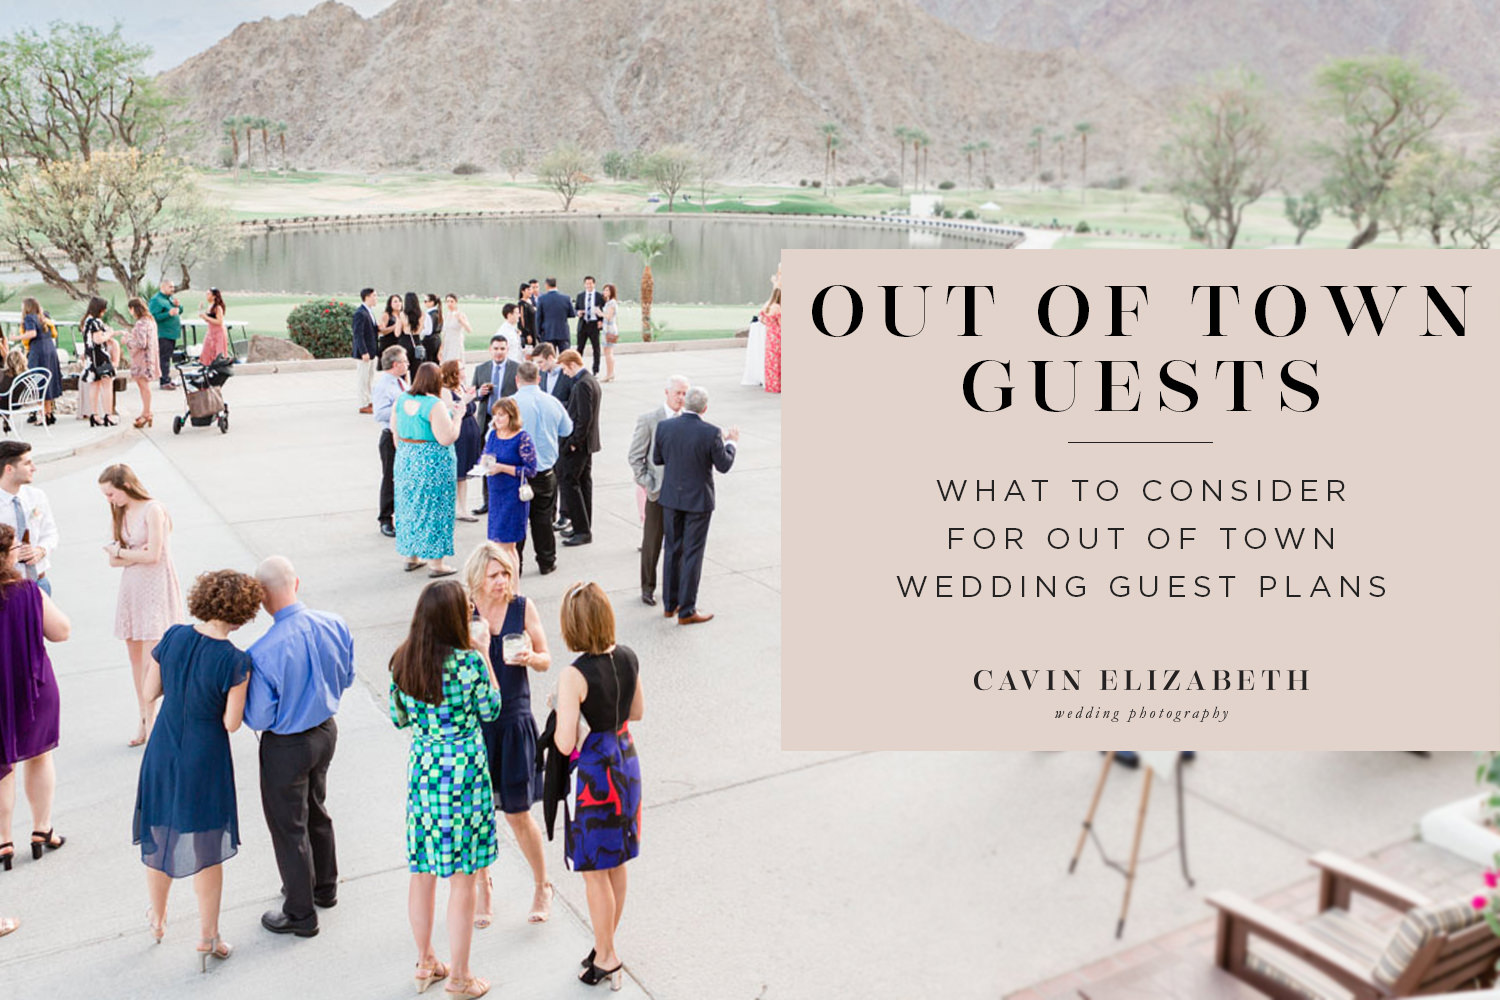 What to Consider for Out of Town Wedding Guests: Plans and Logistics. How to make traveling guests' lives easier for the wedding weekend.